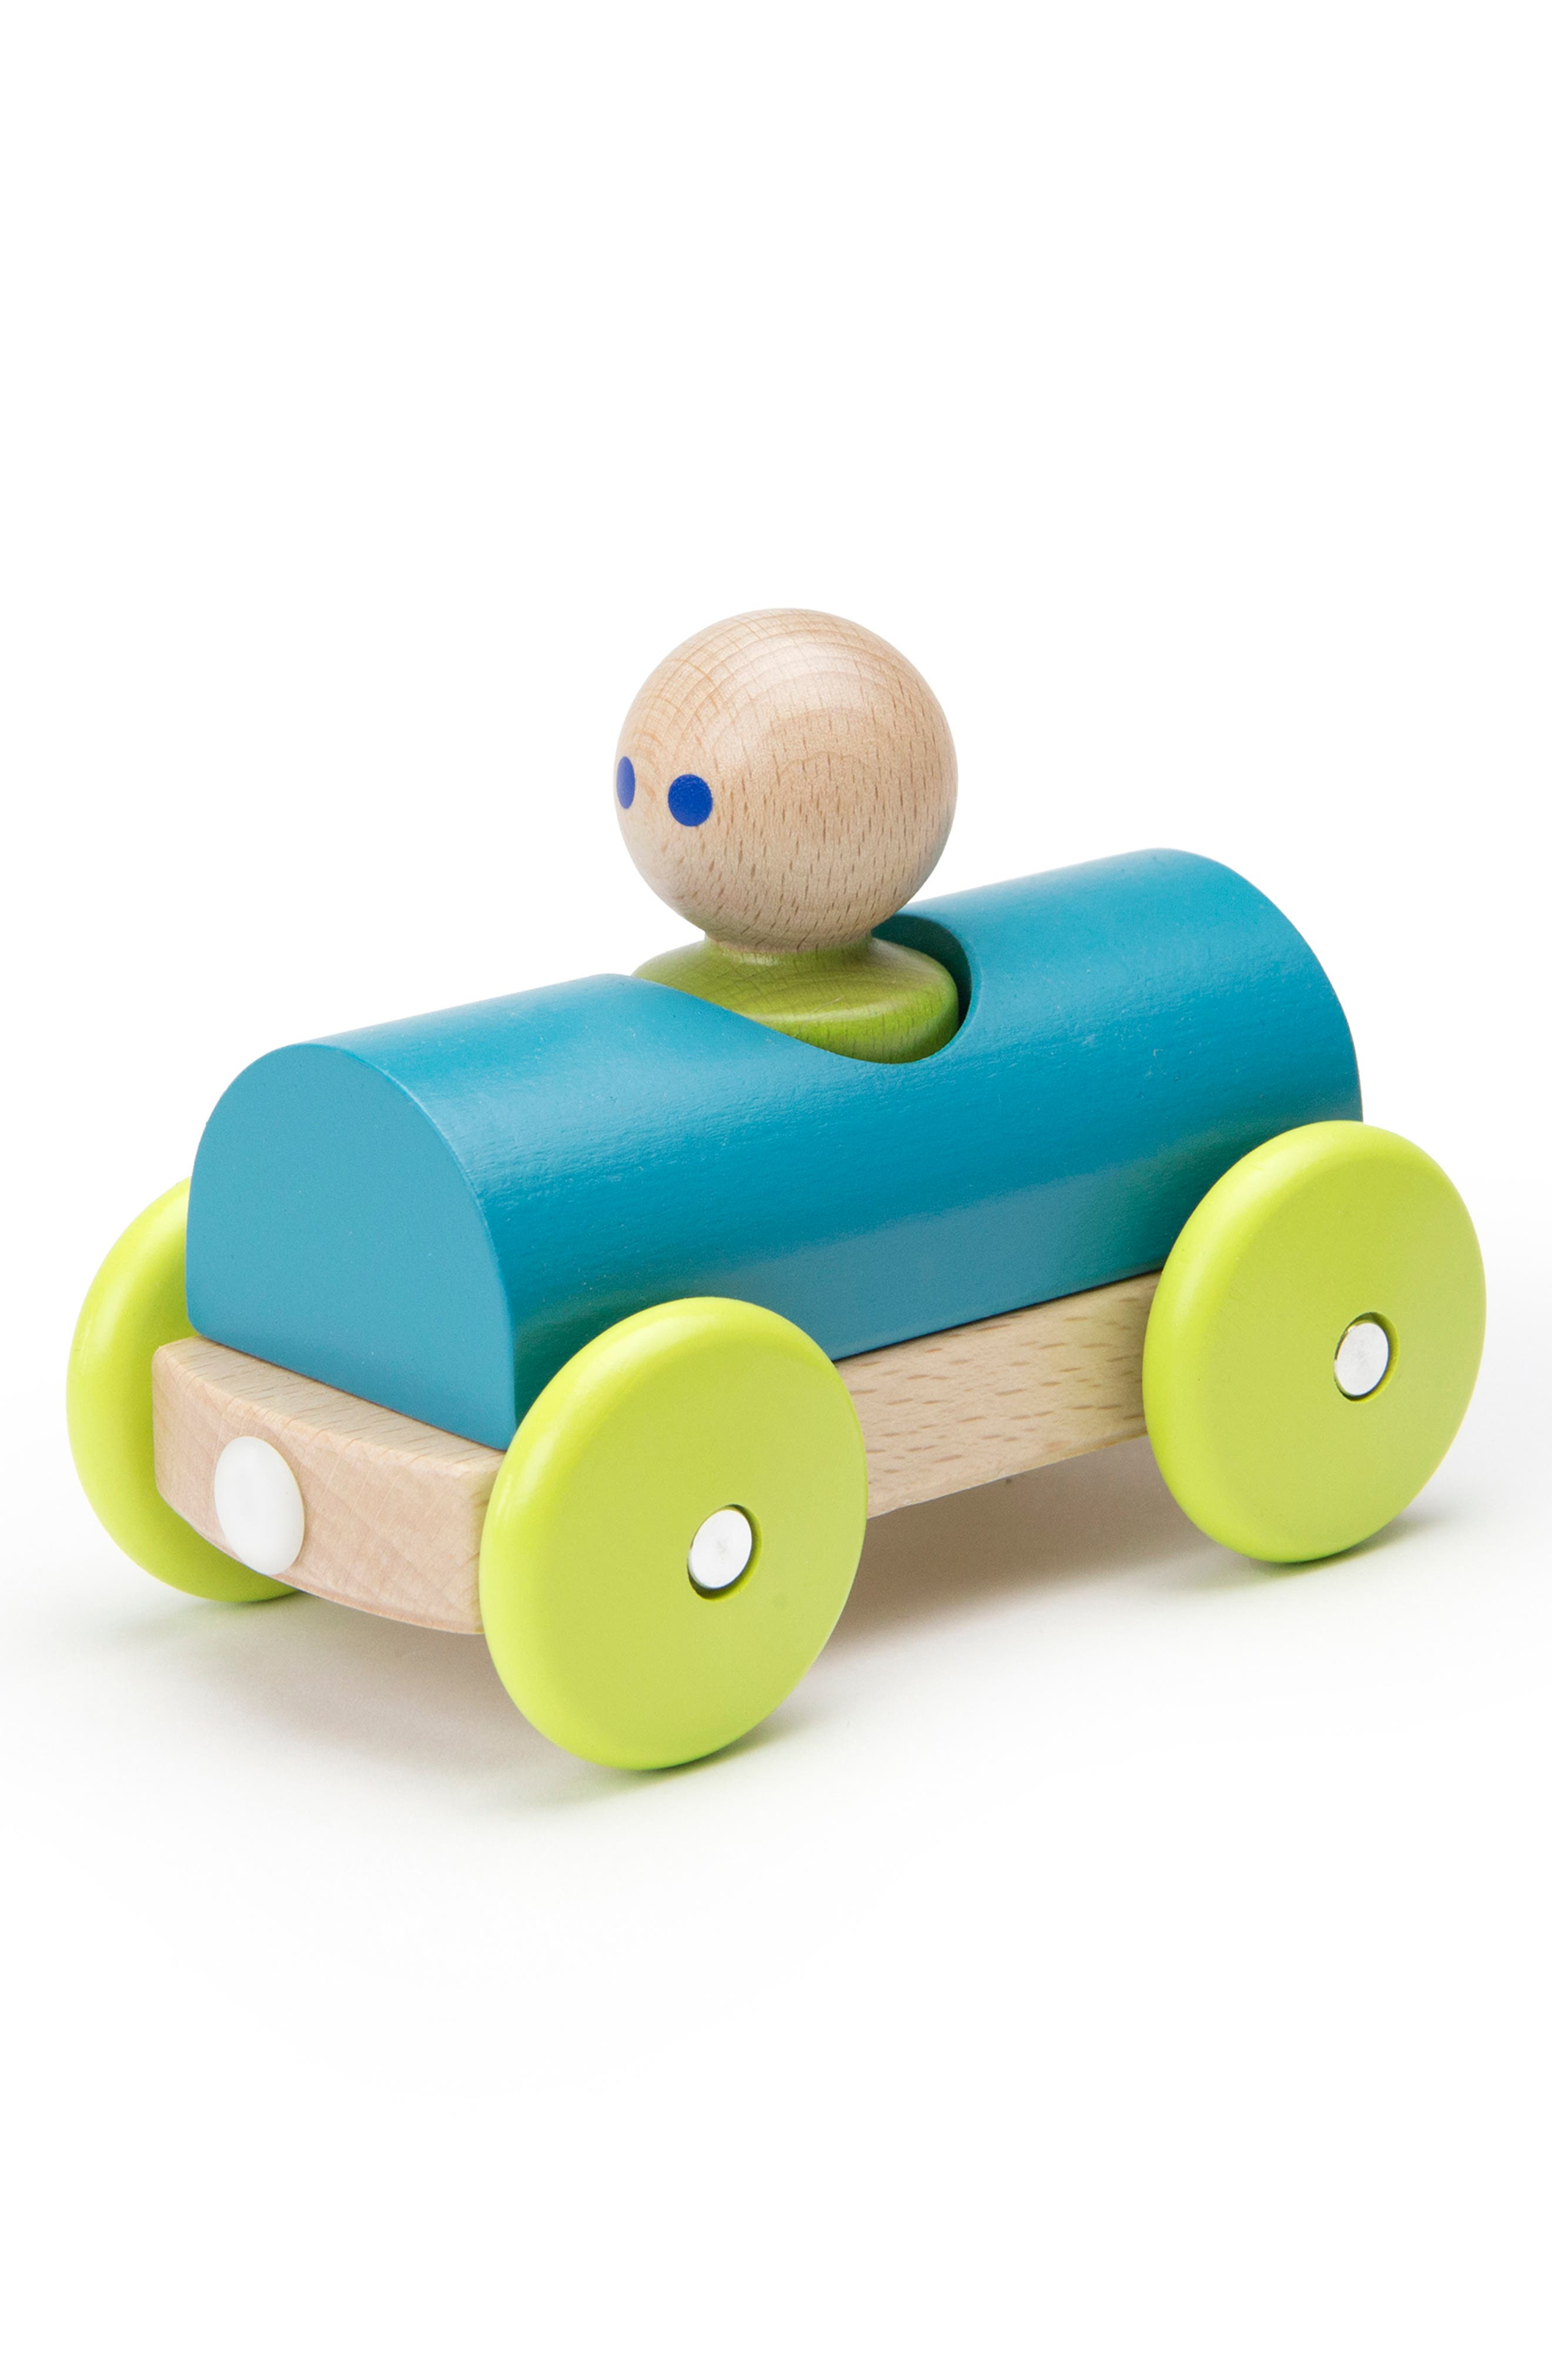 Half Pipe Magnetic Racer Toy,                             Main thumbnail 1, color,                             960